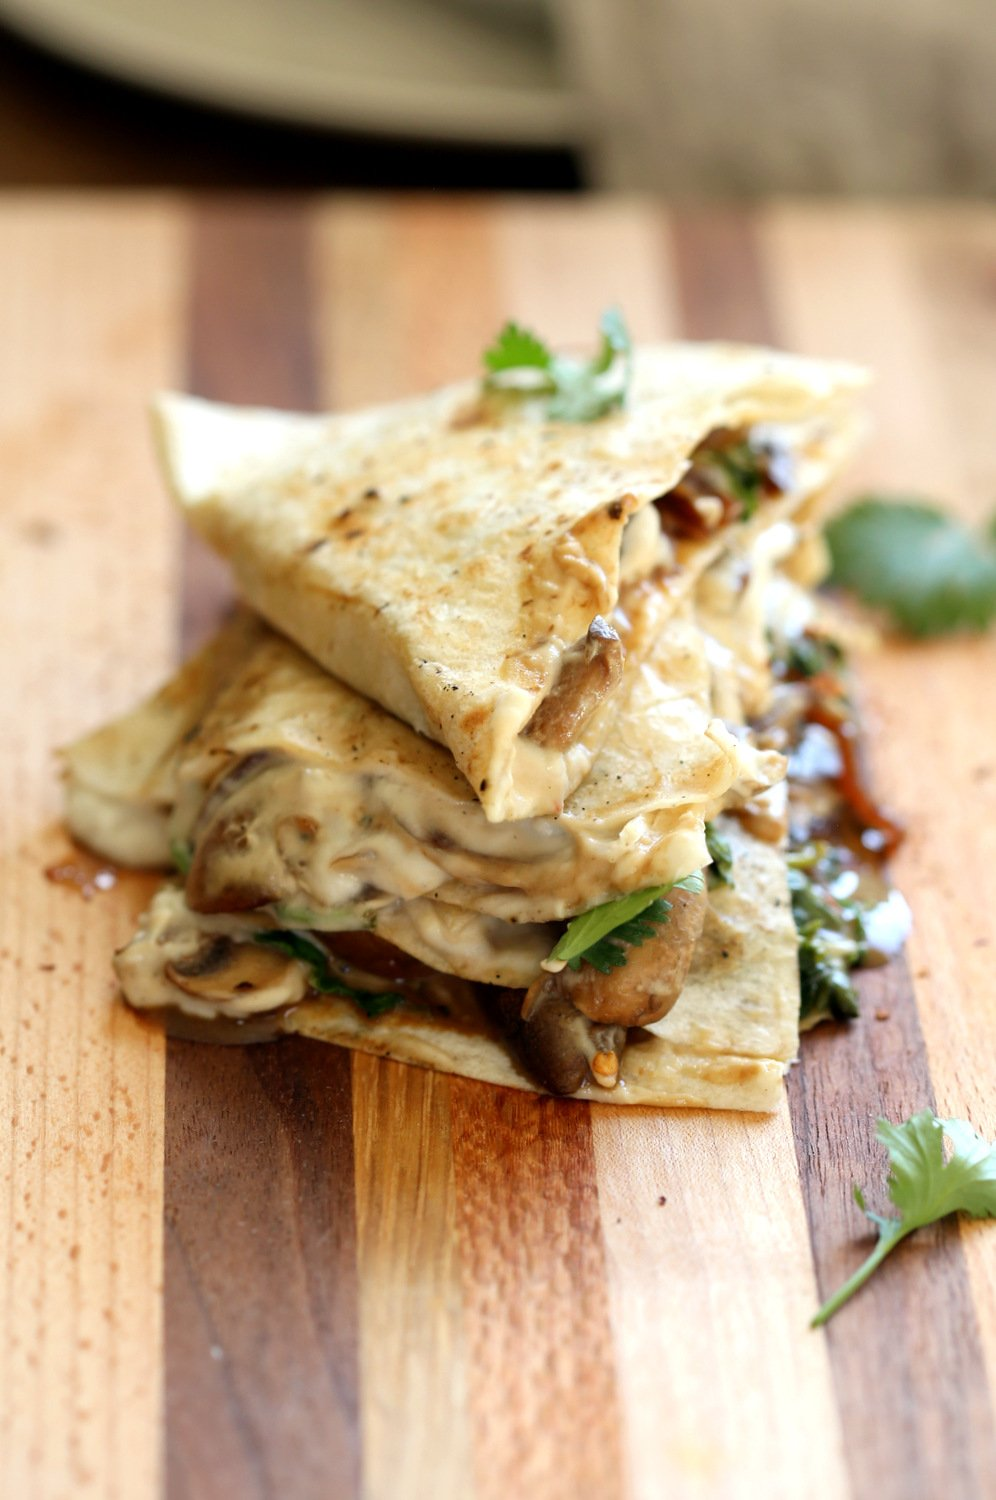 Vegan Mushroom Quesadilla With Cashew Mozzarella Vegan Richa